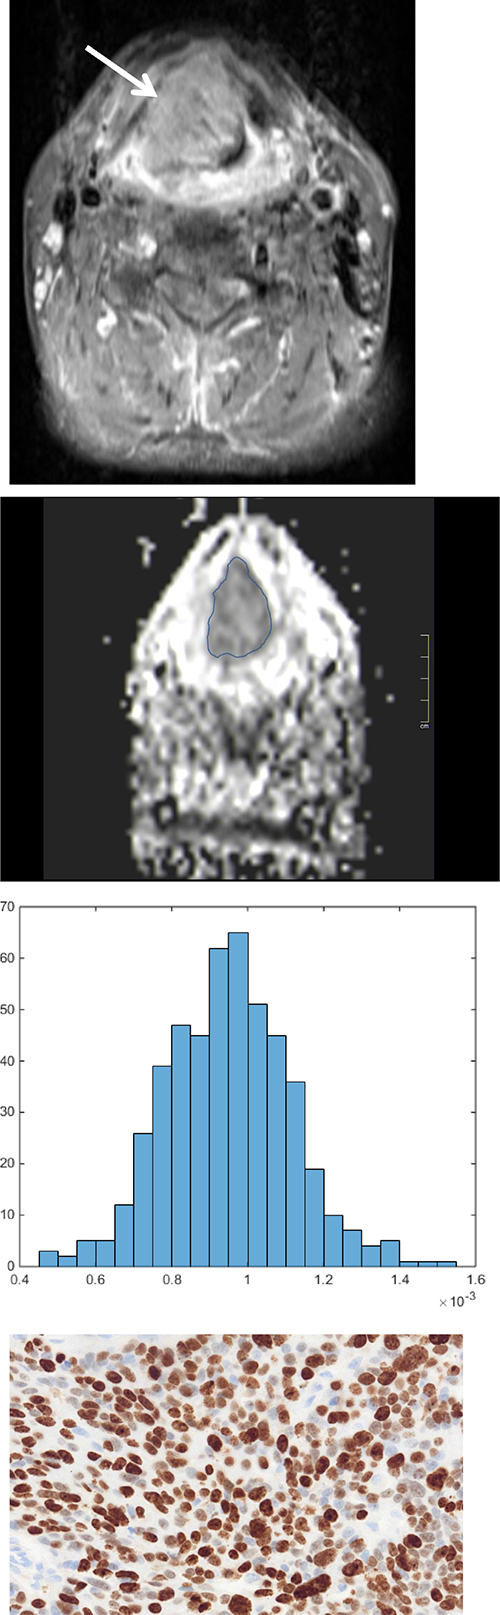 ADC histogram analysis parameters and histopathological findings in a large oral/oropharynx squamous cell carcinoma.